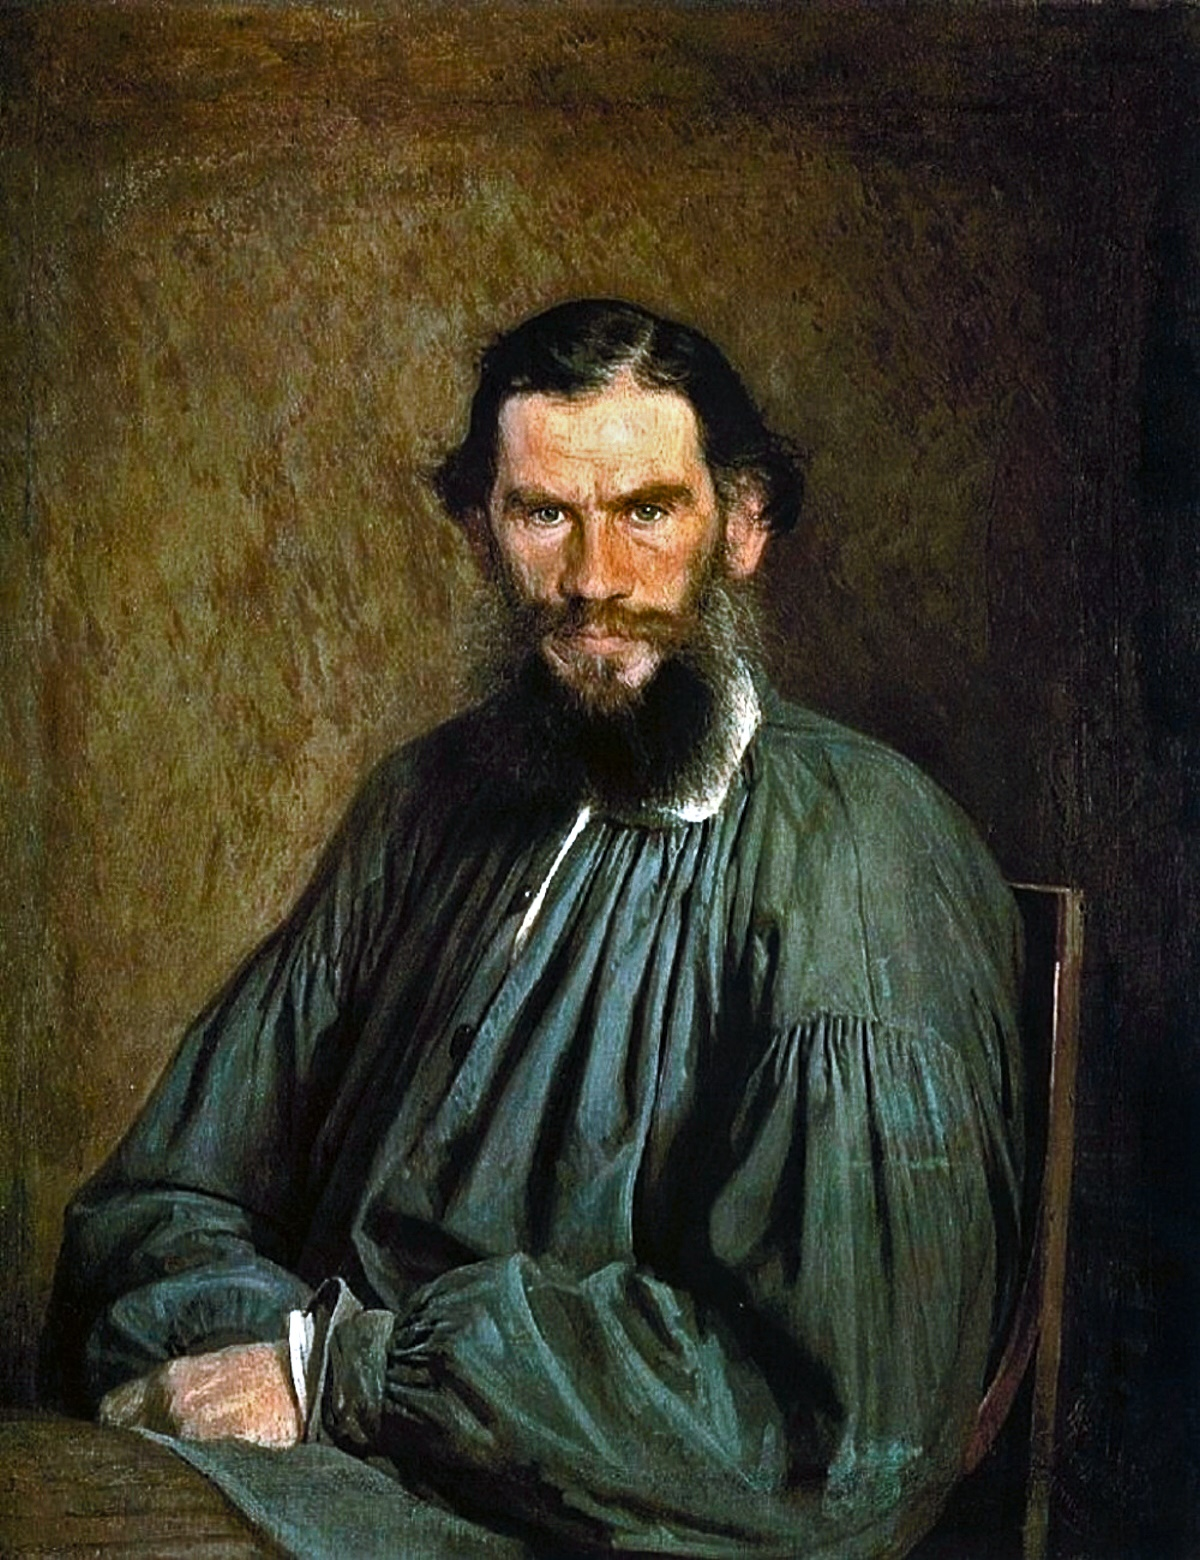 A portrait of the author graf l n tolstoy